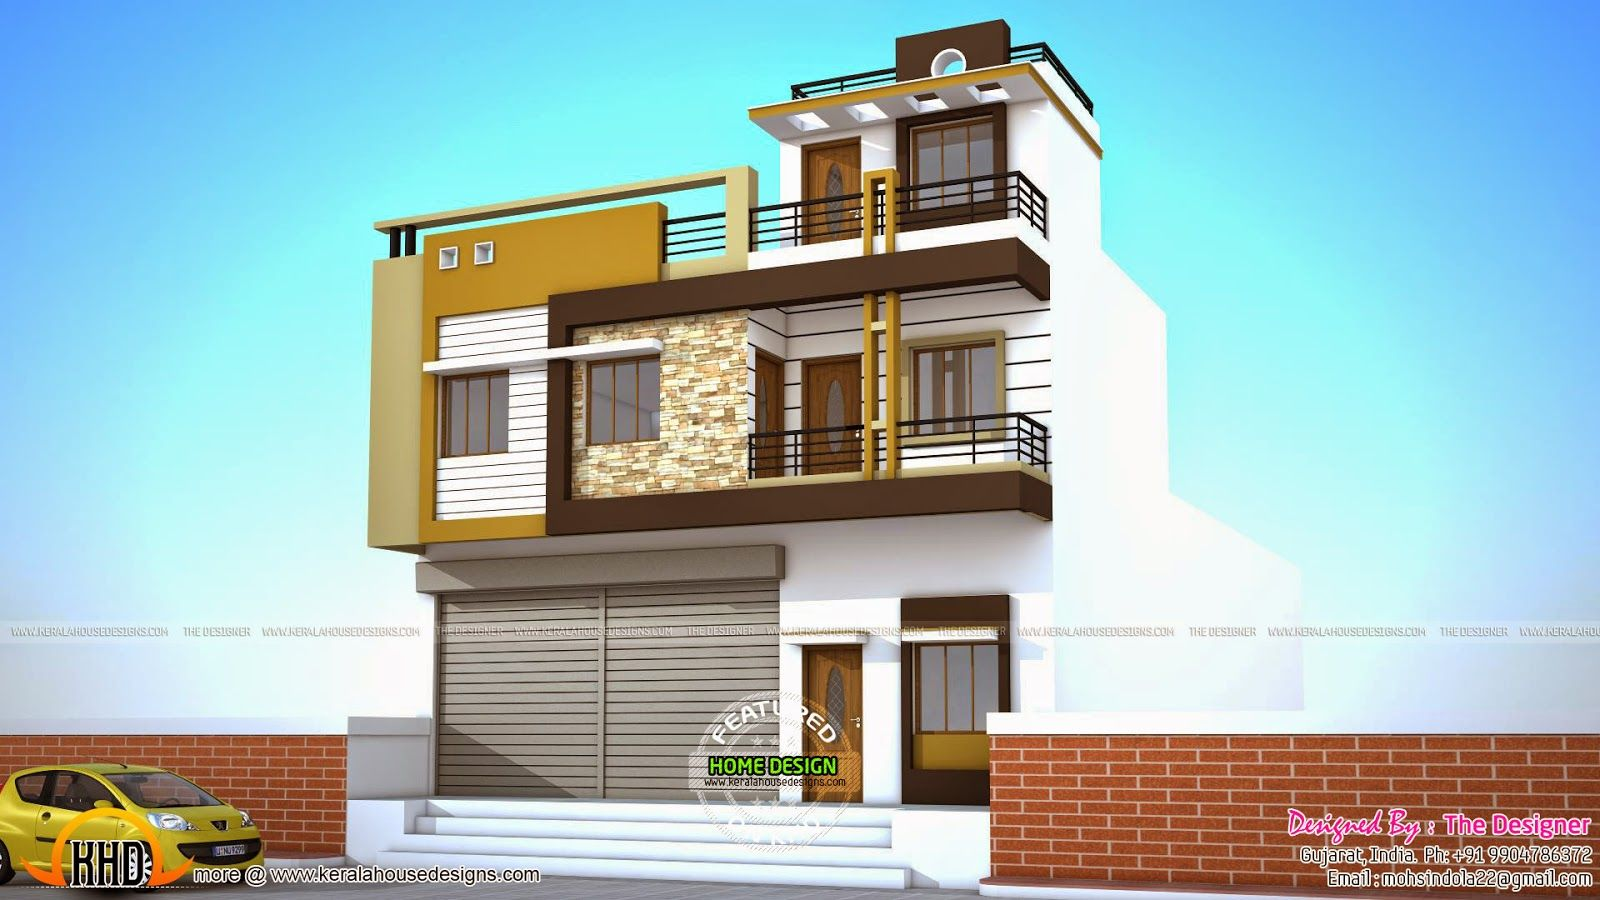 2 house plans with shops on ground floor house ground for Shopping for home